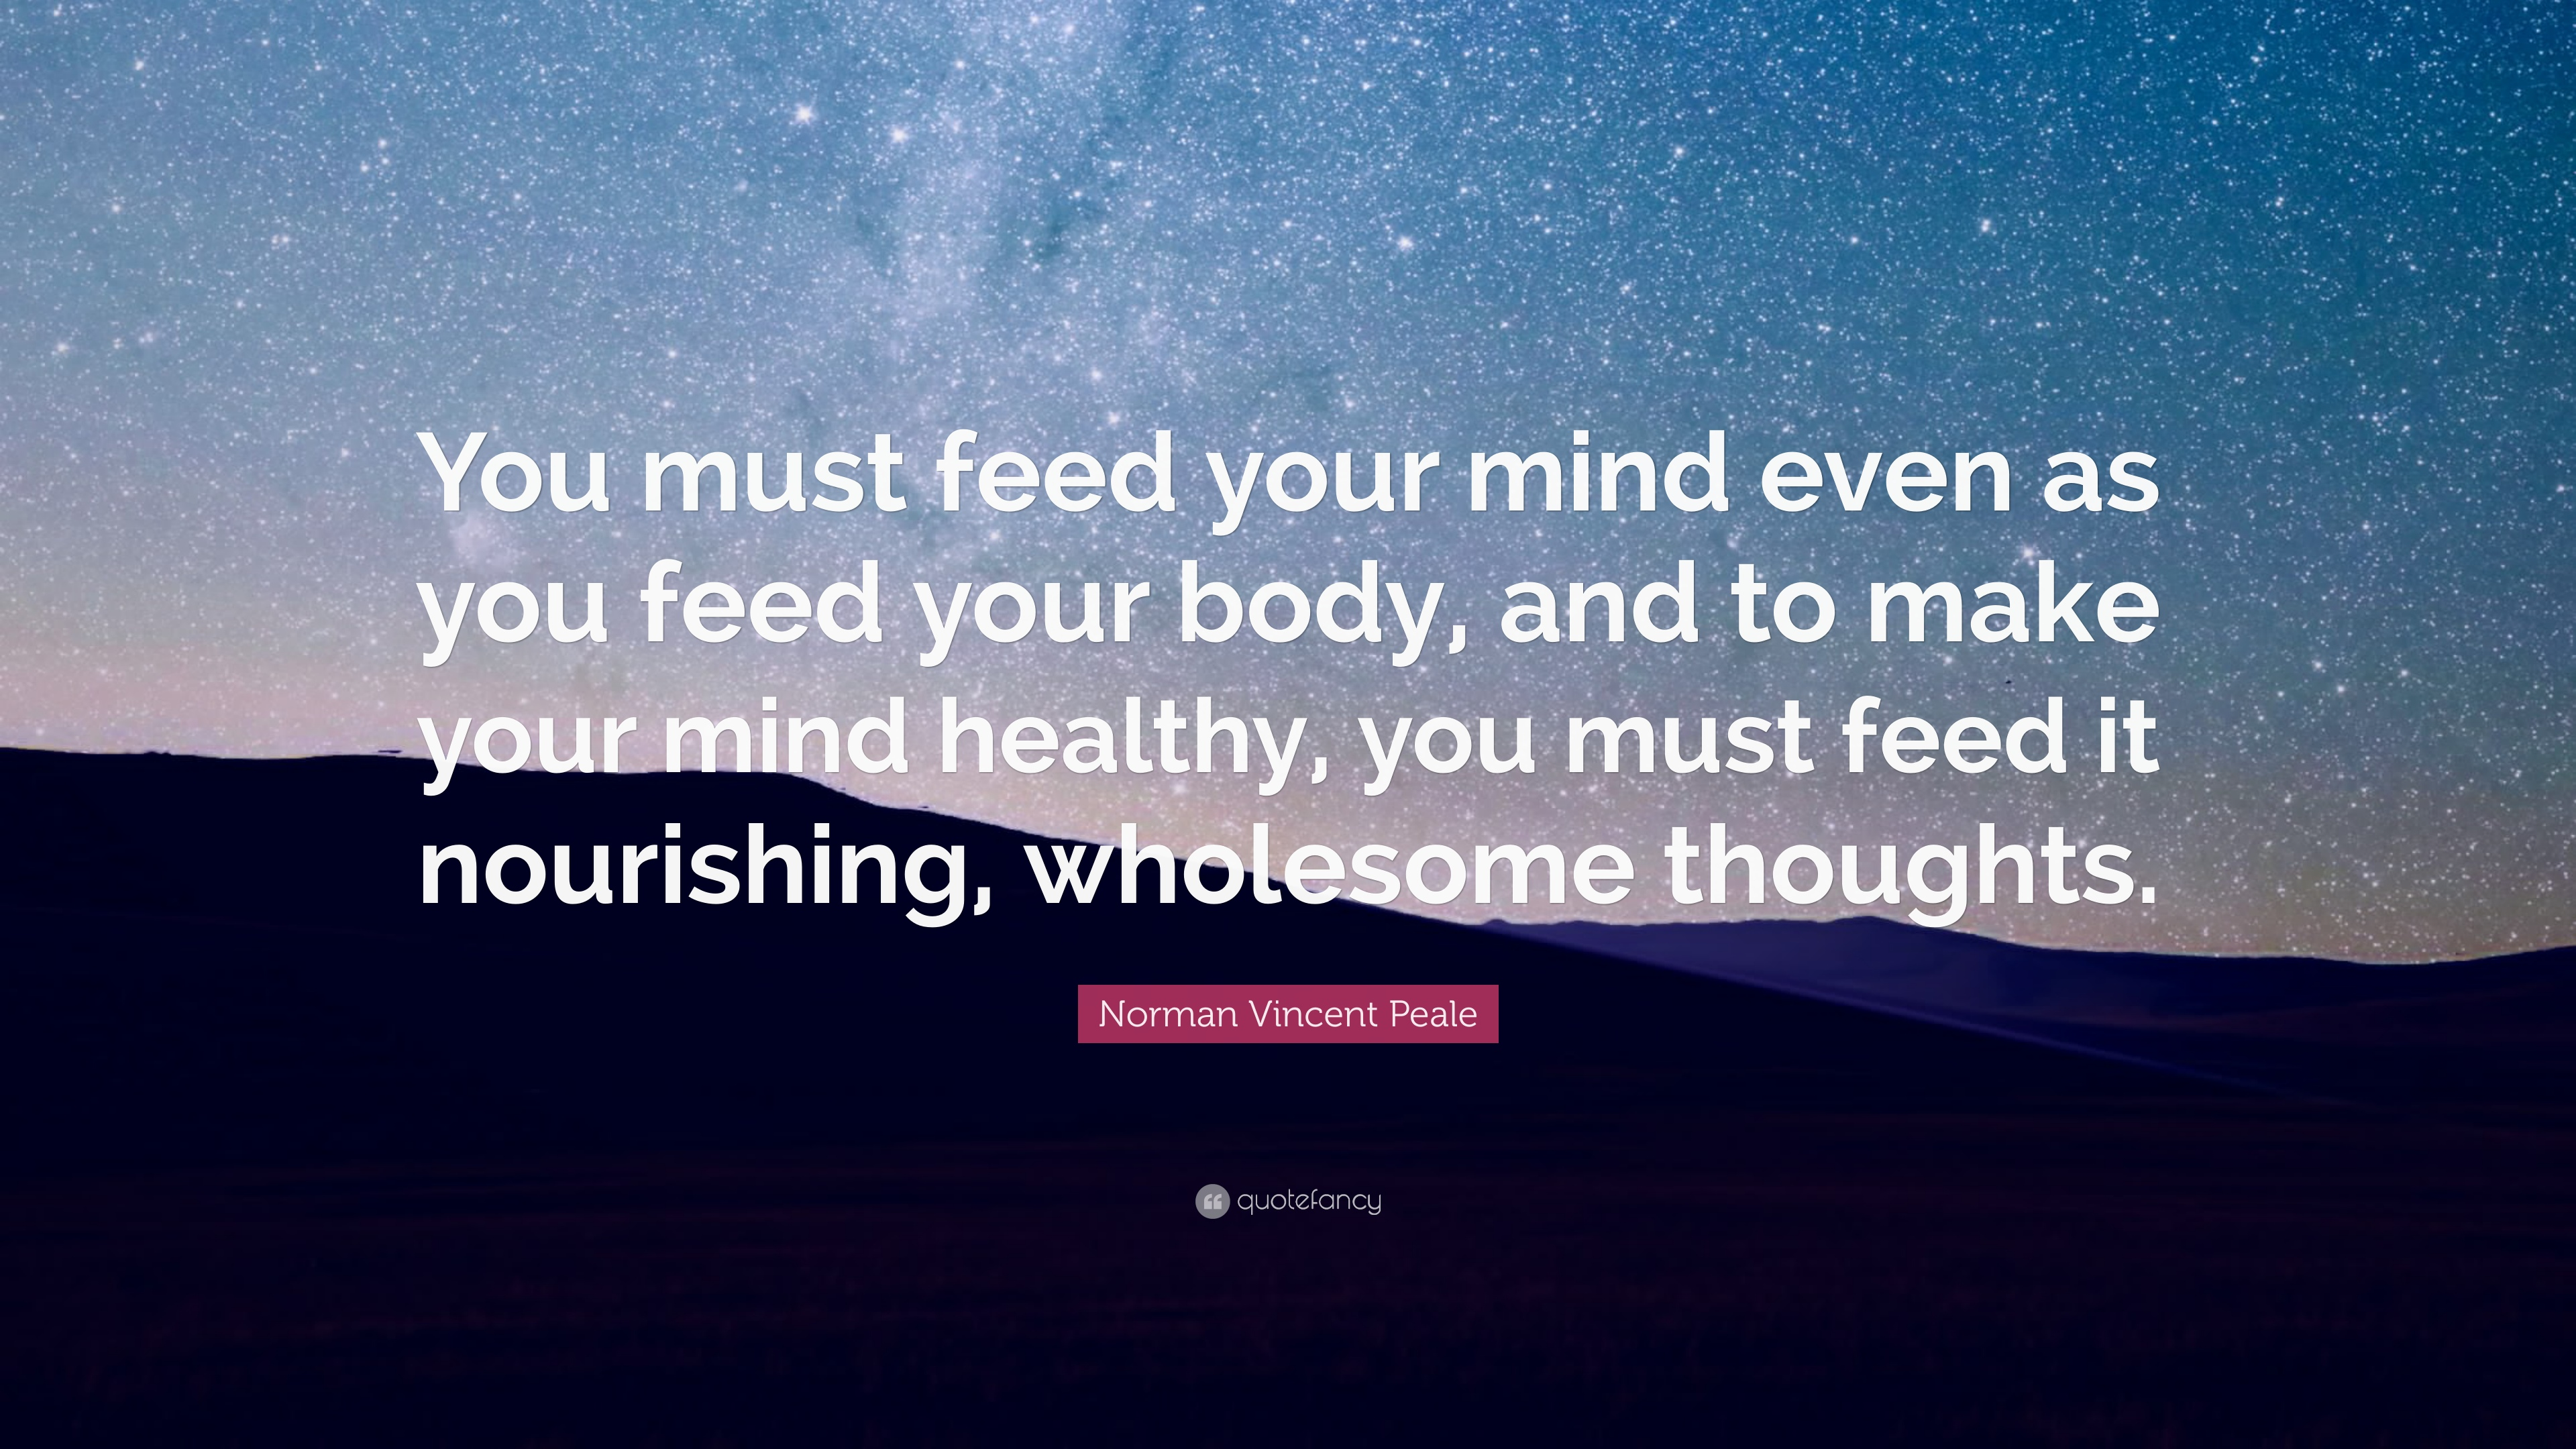 Wholesome Quote Wallpaper Norman Vincent Peale Quote You Must Feed Your Mind Even